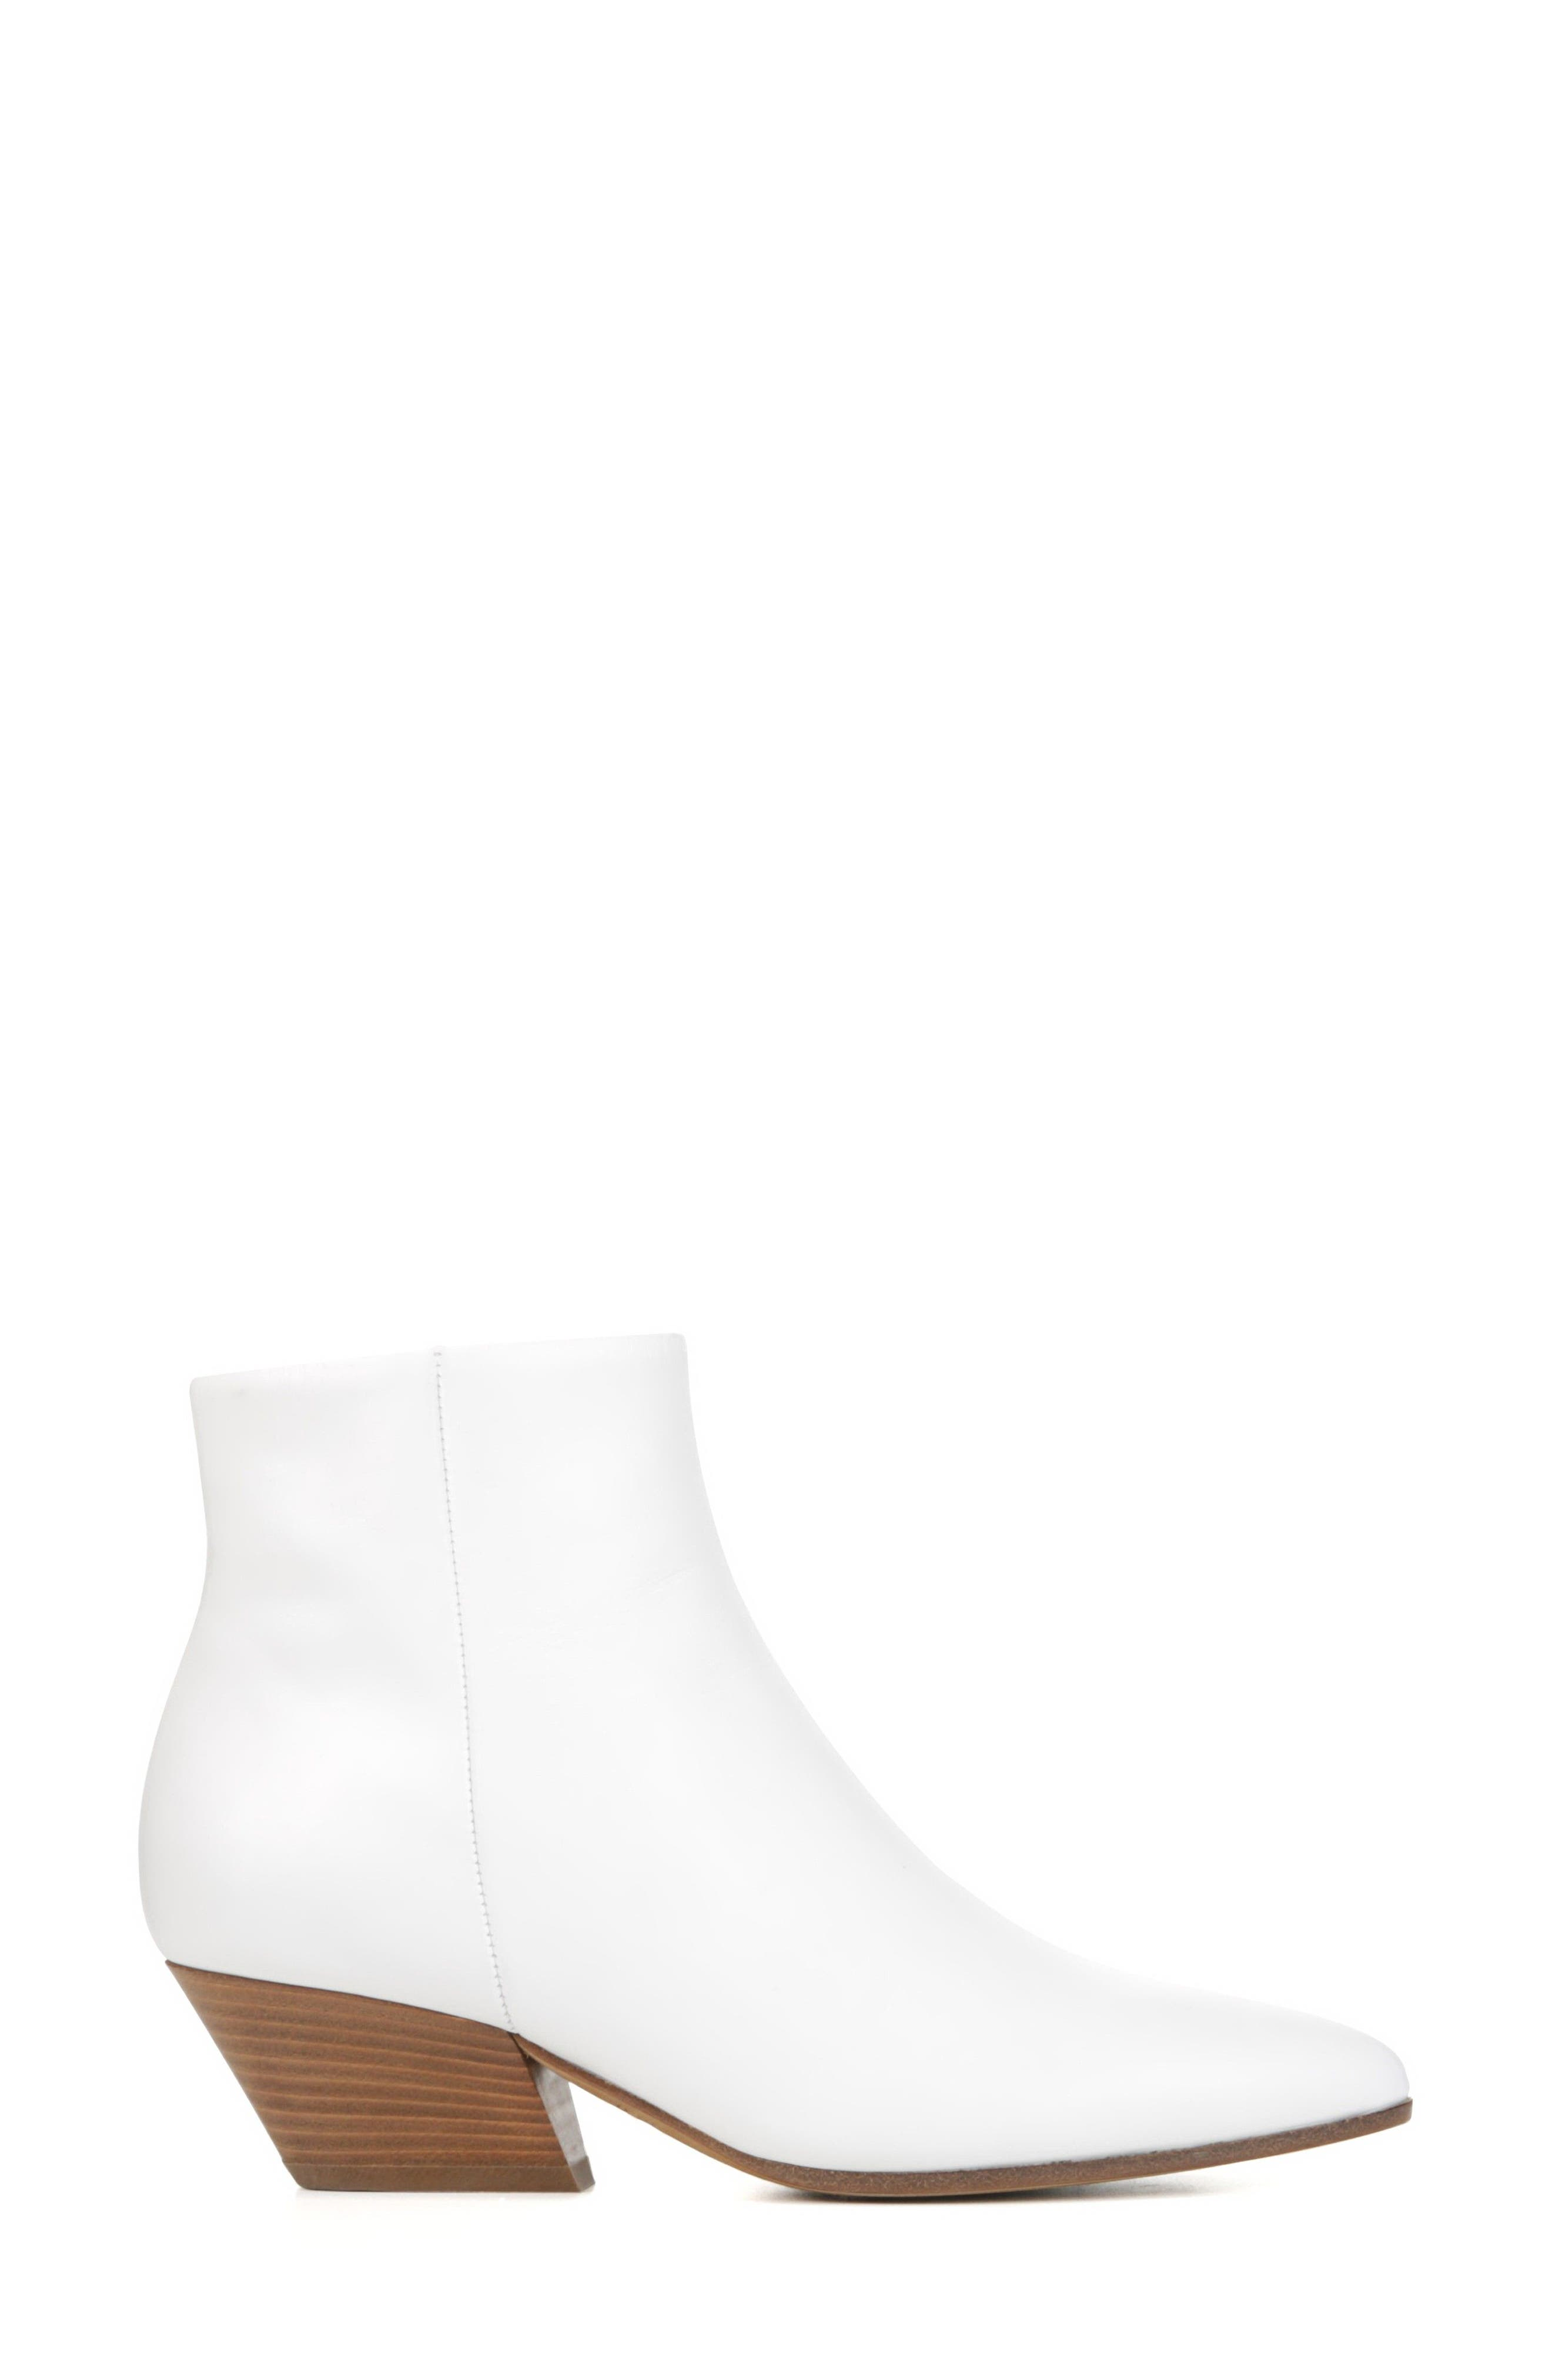 Vaughn Bootie,                             Alternate thumbnail 3, color,                             Optic White Leather